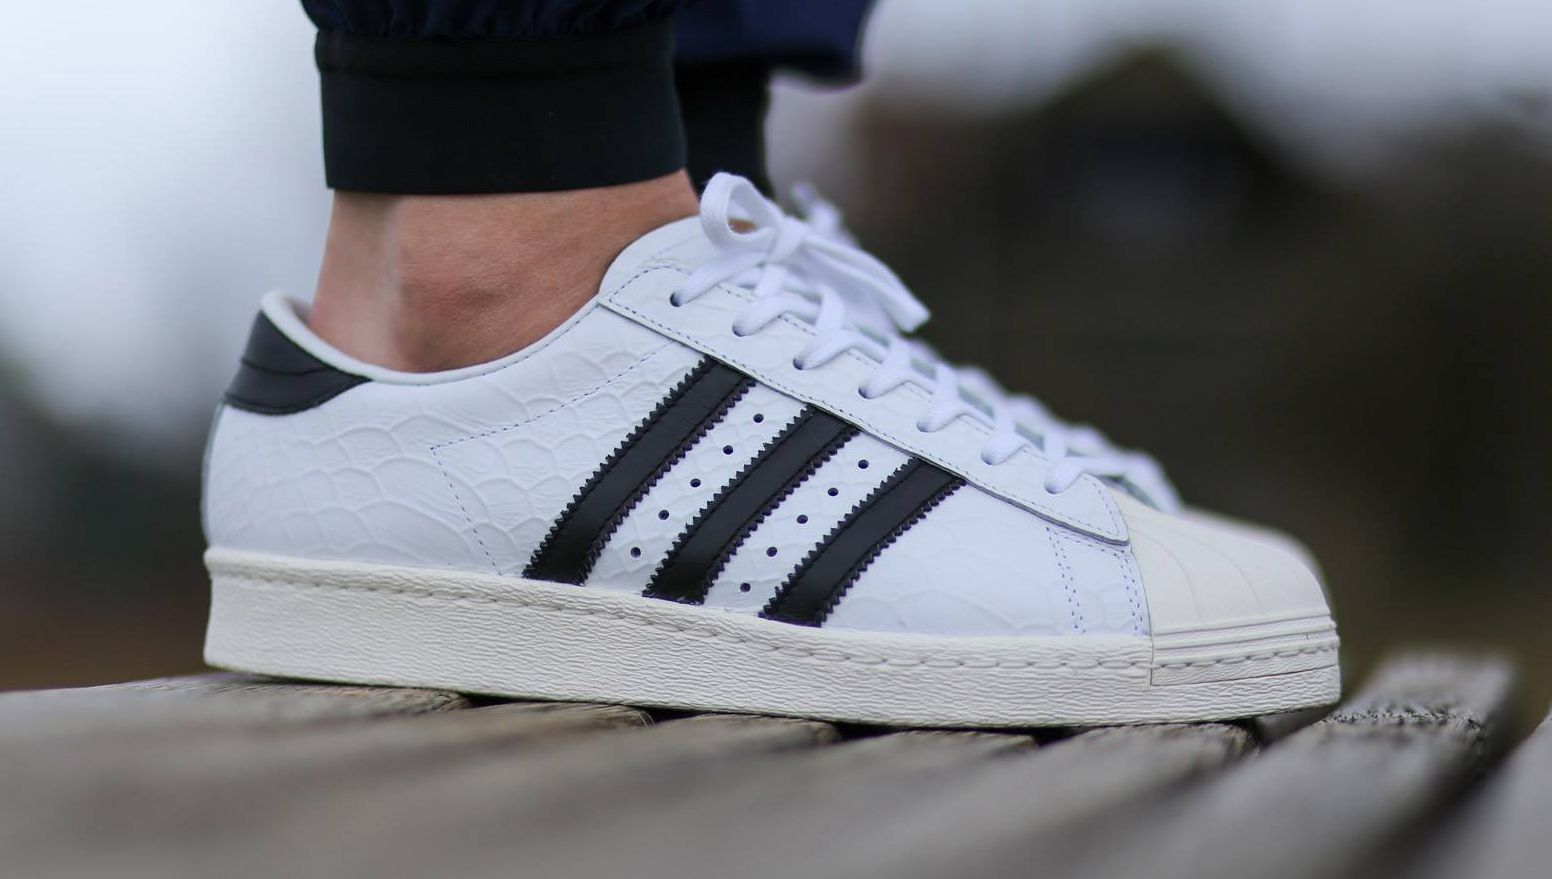 adidas Superstars Get Super Scaled | kix | Adidas, Adidas